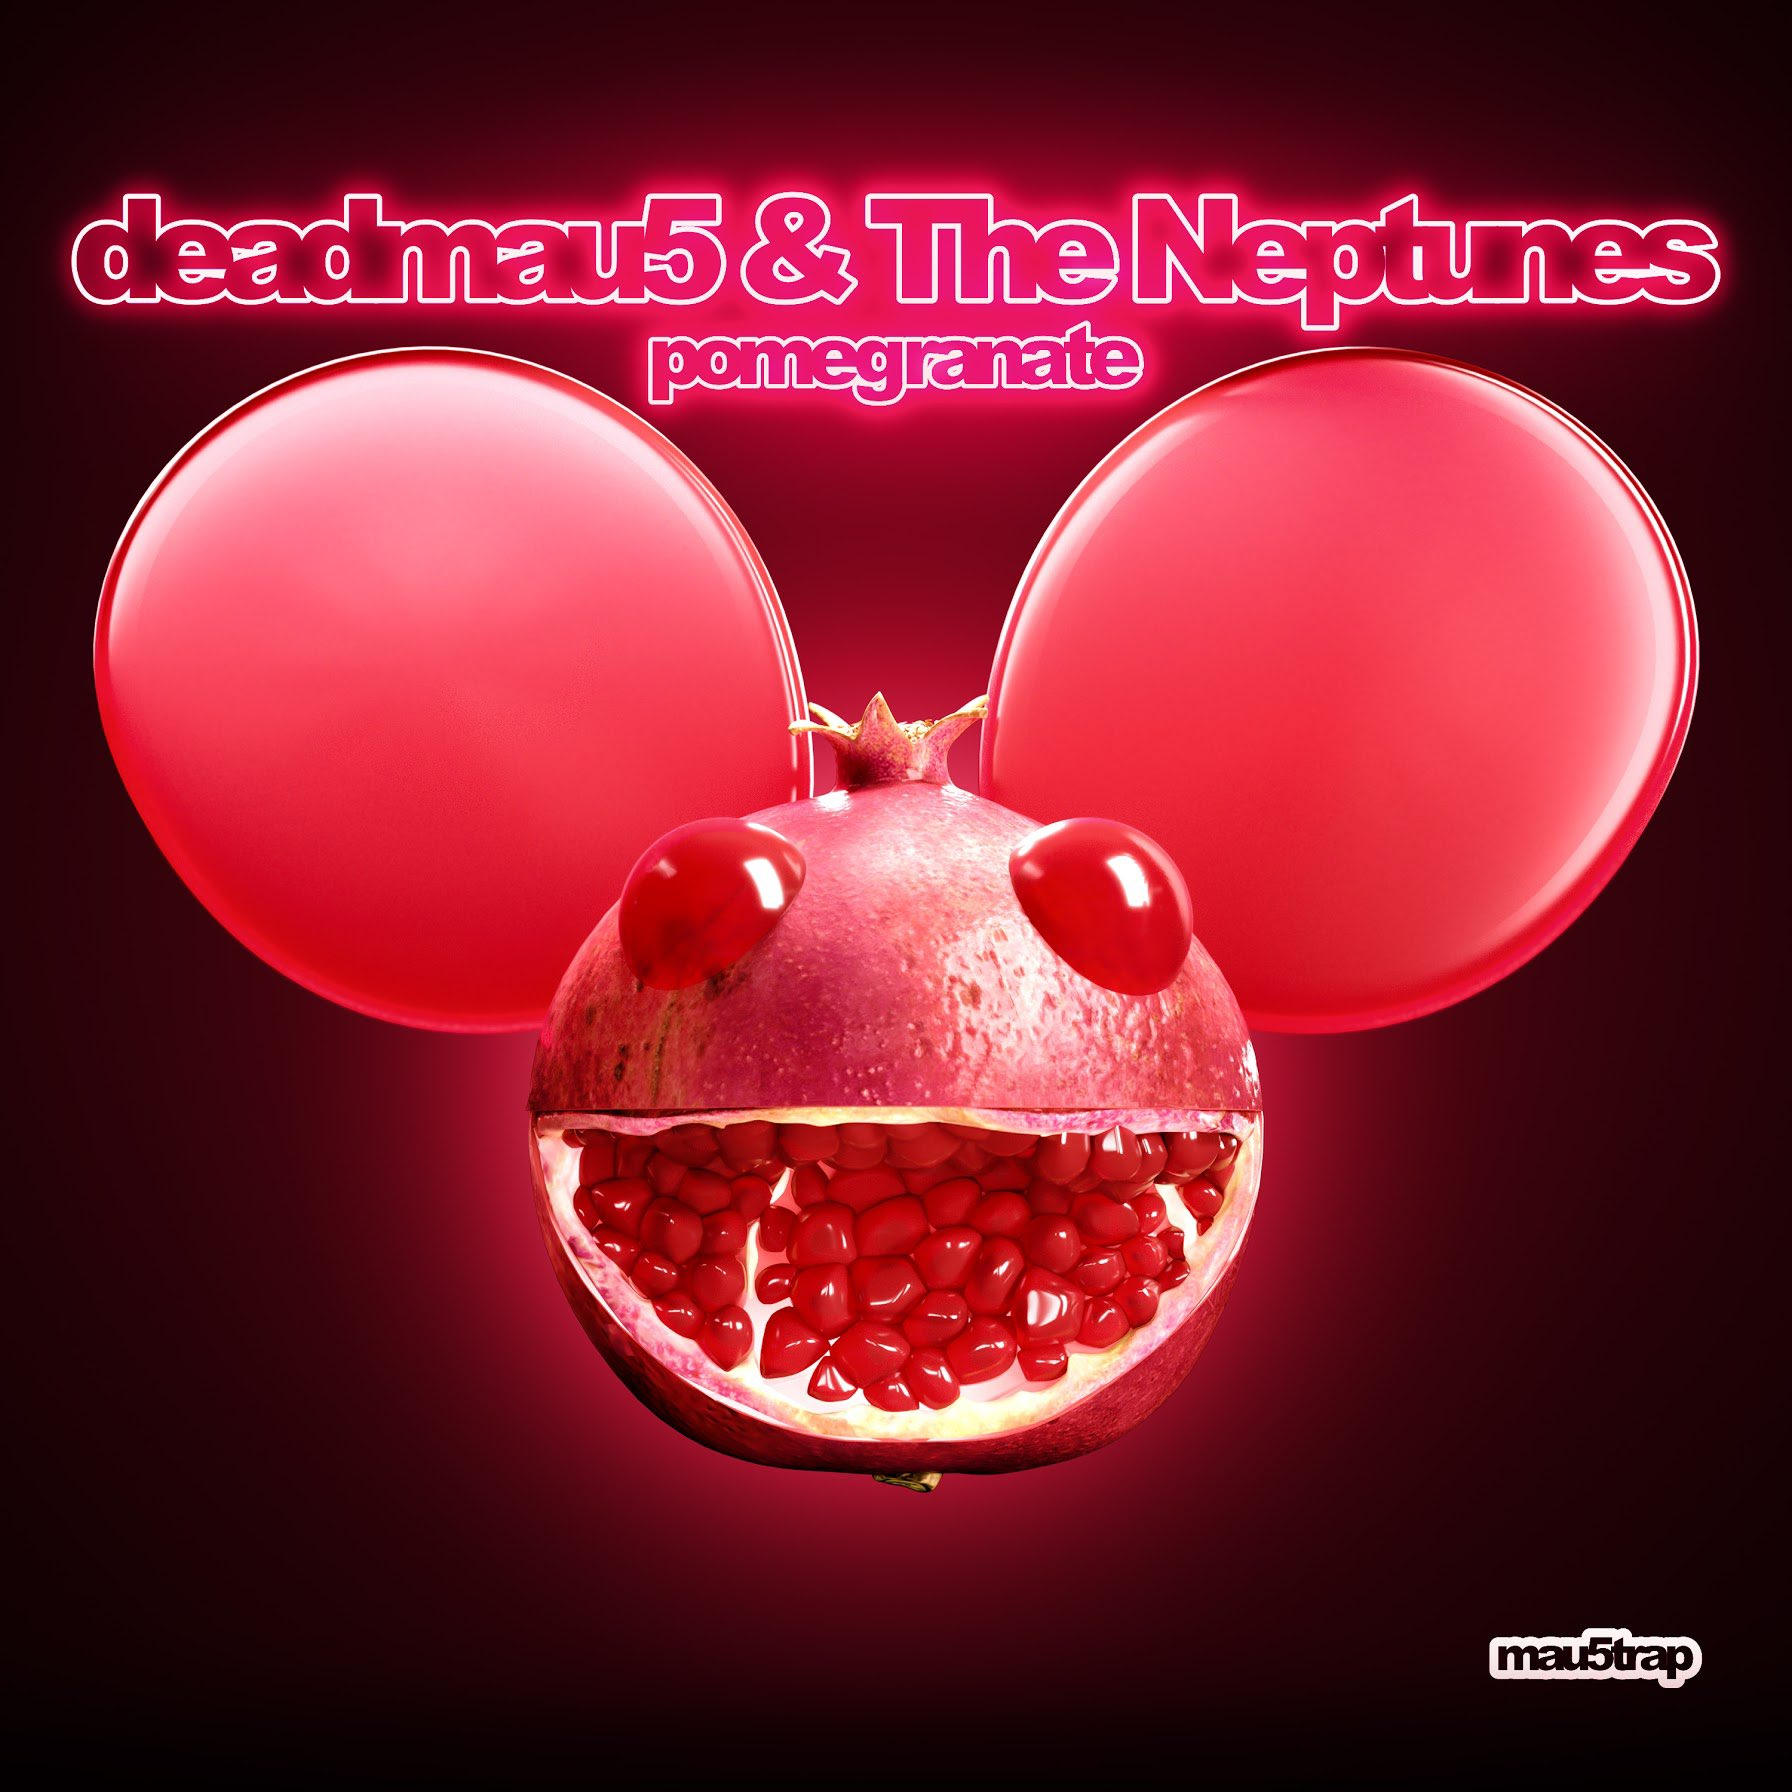 deadmau5-pomegranate-art